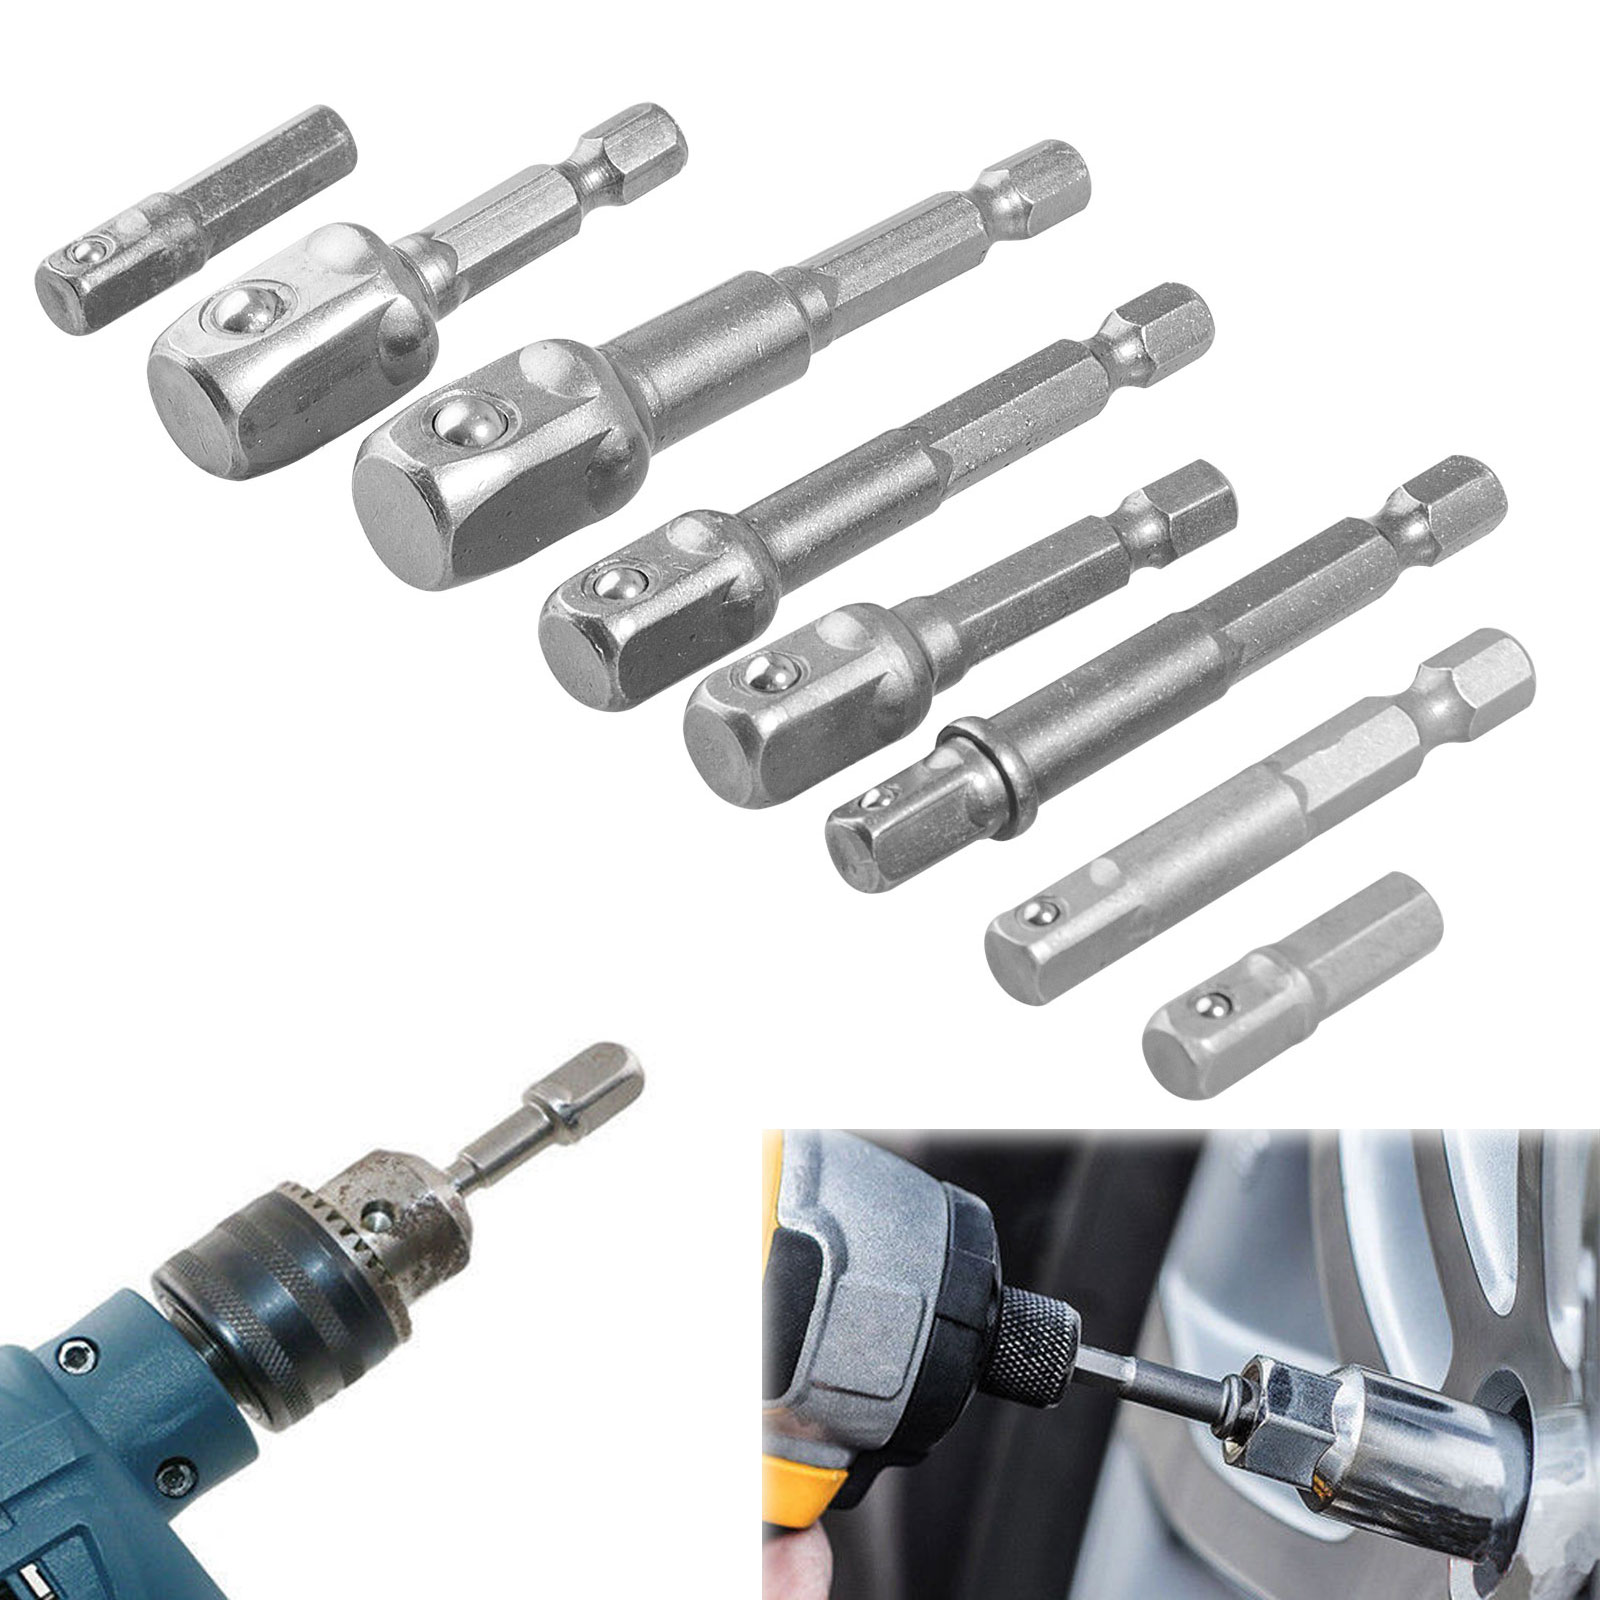 "8-pack Socket Adapter Set Hex Shank to 1/4"" 3/8"" 1/2"" Impact Driver Drill Power Extension Bits Bar"